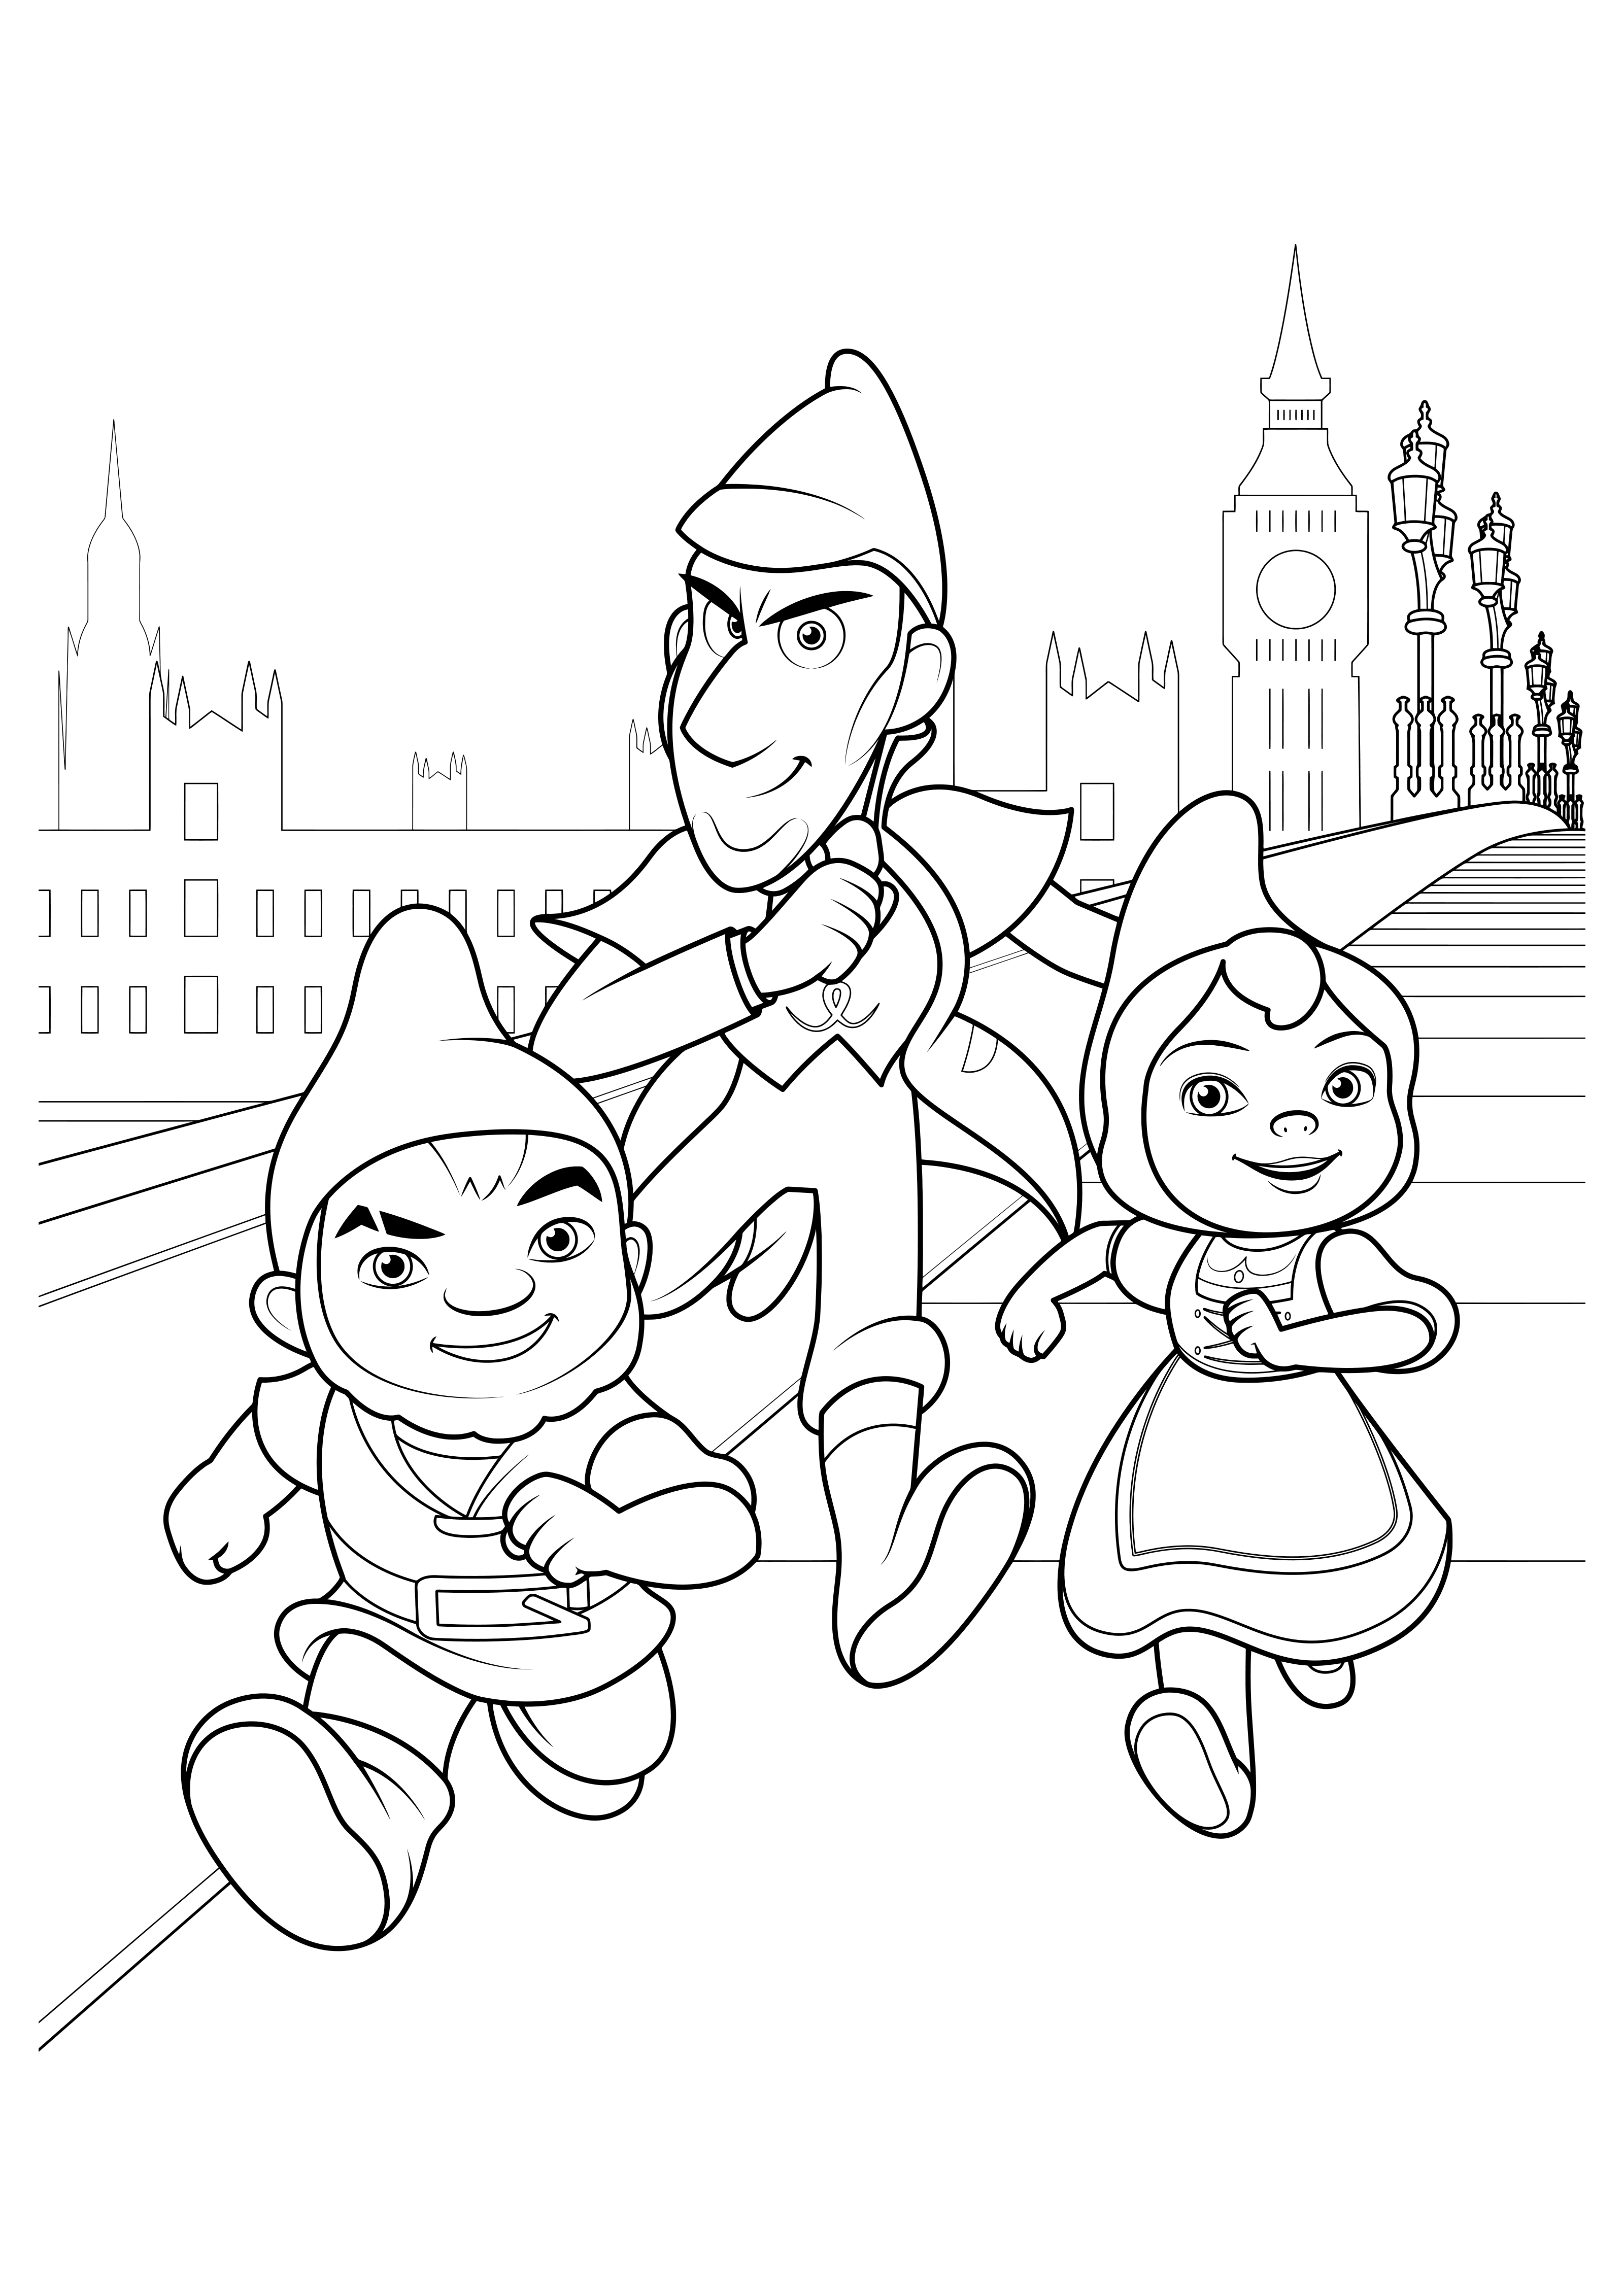 sherlock gnomes coloring pages to download and print for free